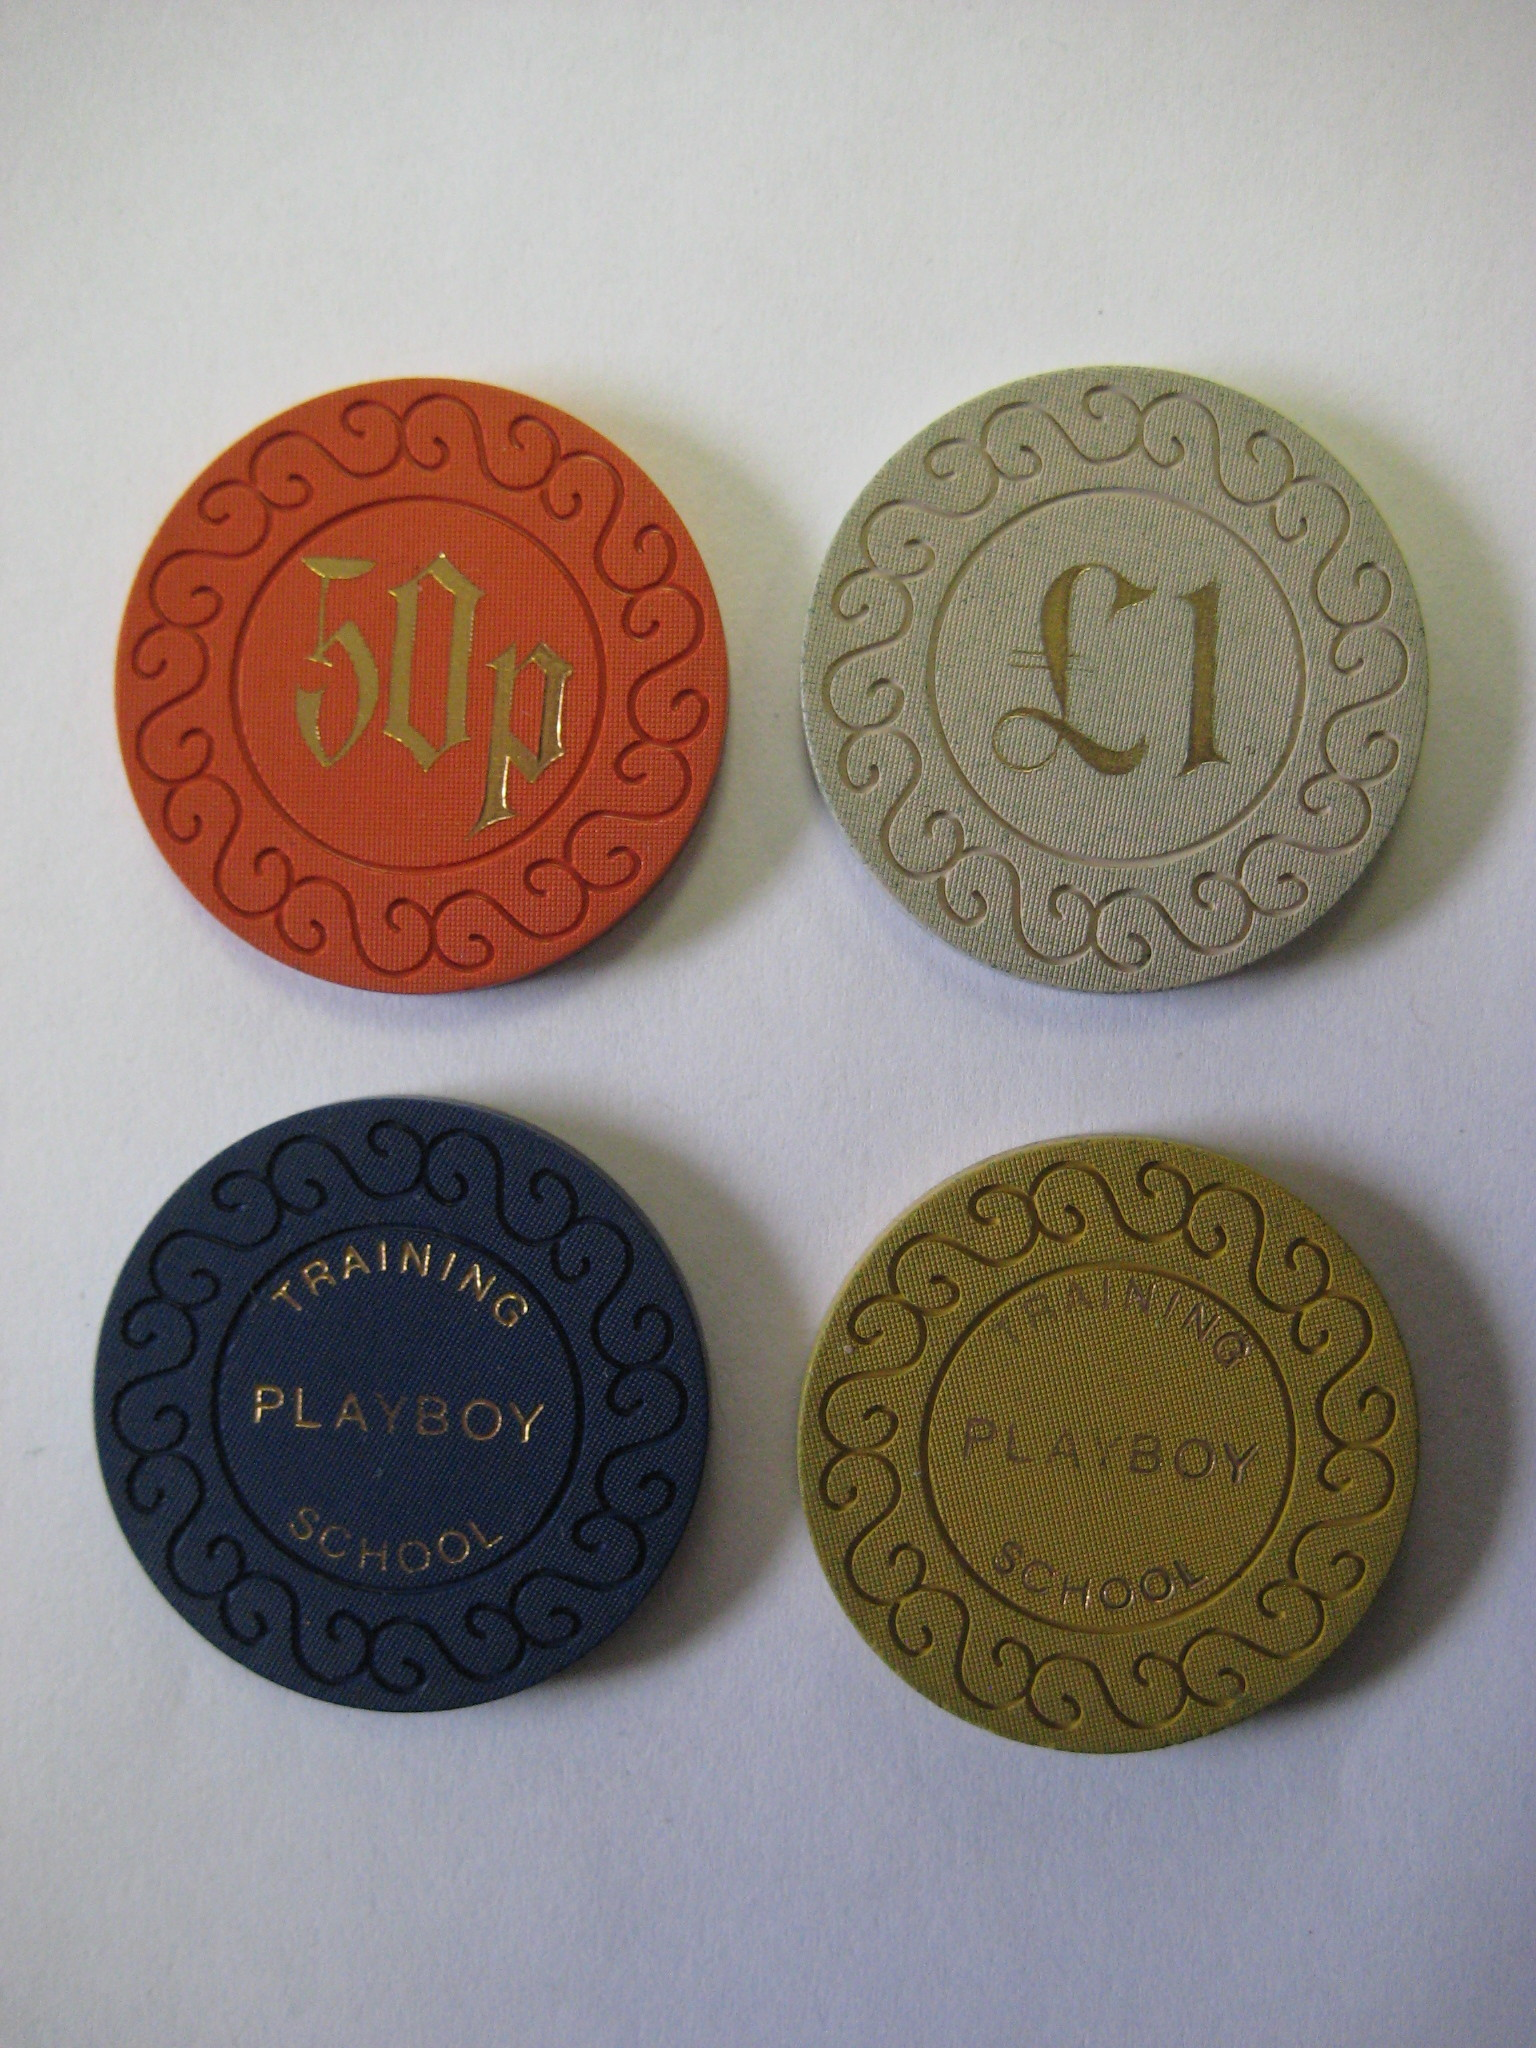 Playboy Training School Casino chips